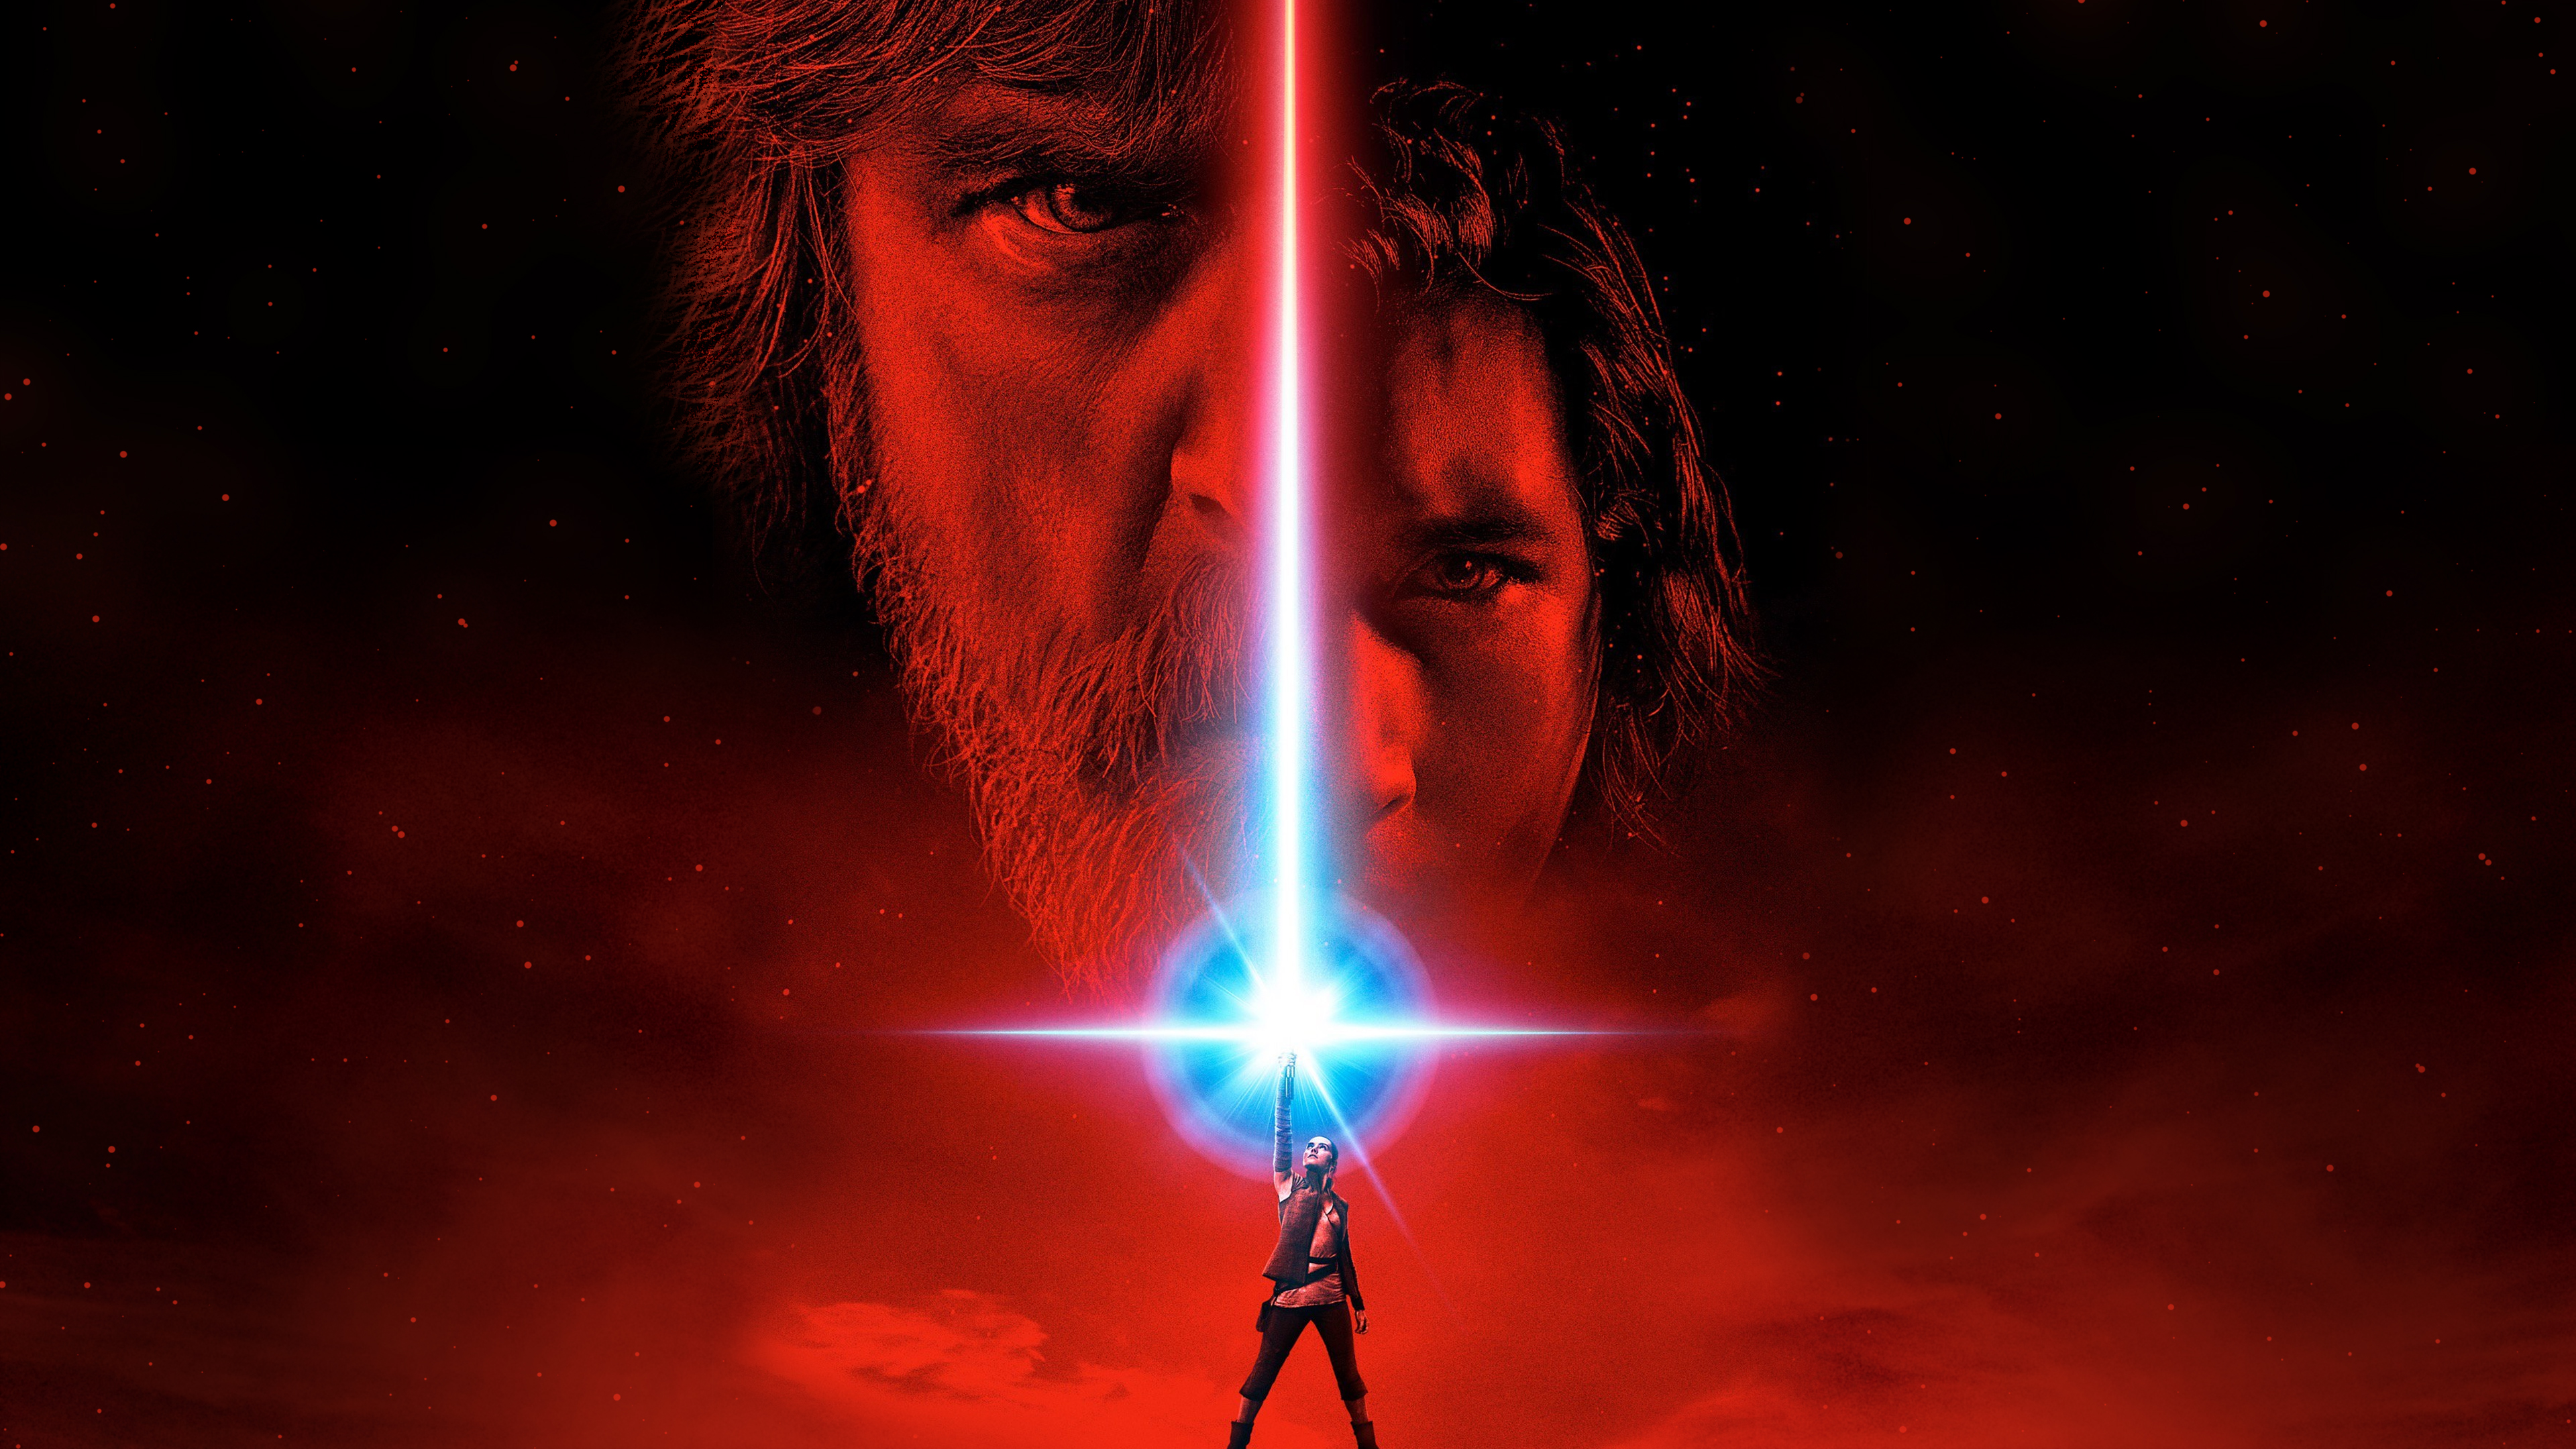 star wars the last jedi movie wallpaper background 62379